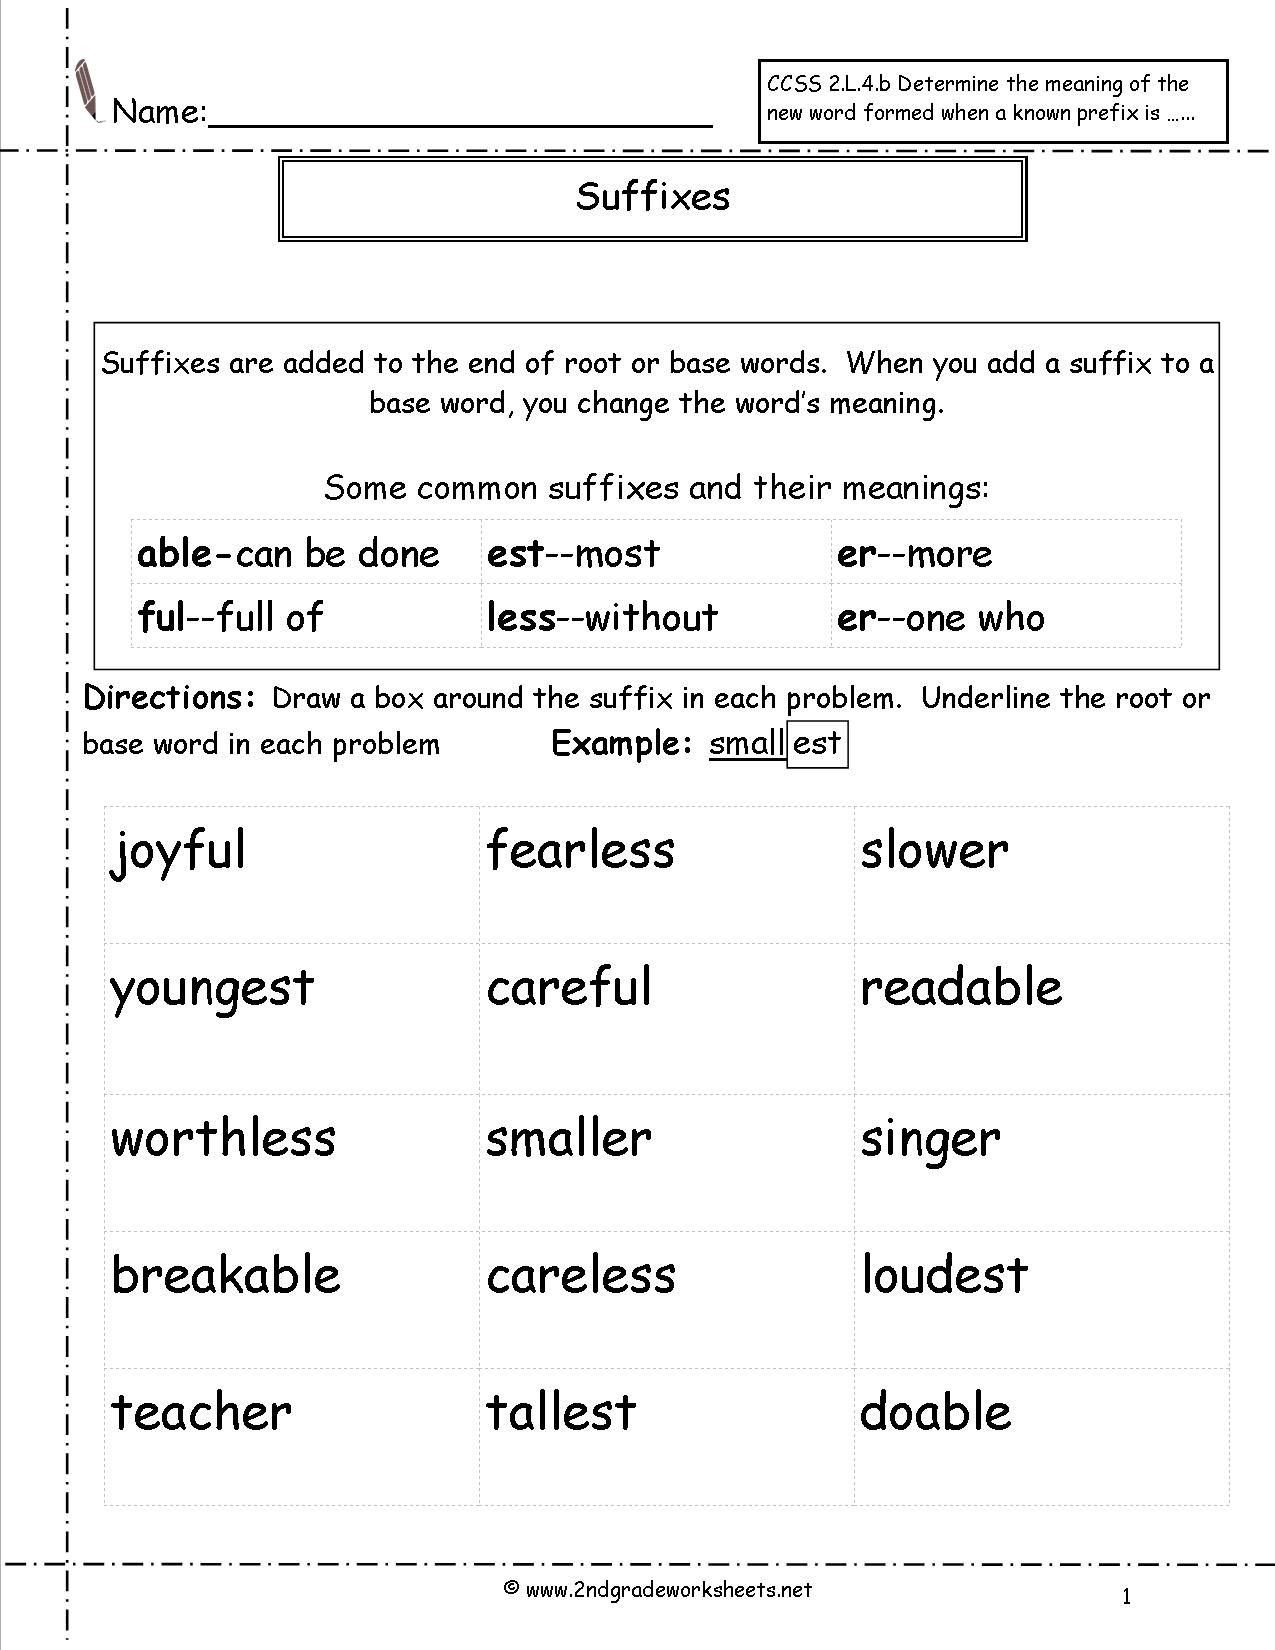 Free Prefix and Suffix Worksheet 41 Innovative Prefix Worksheets for You